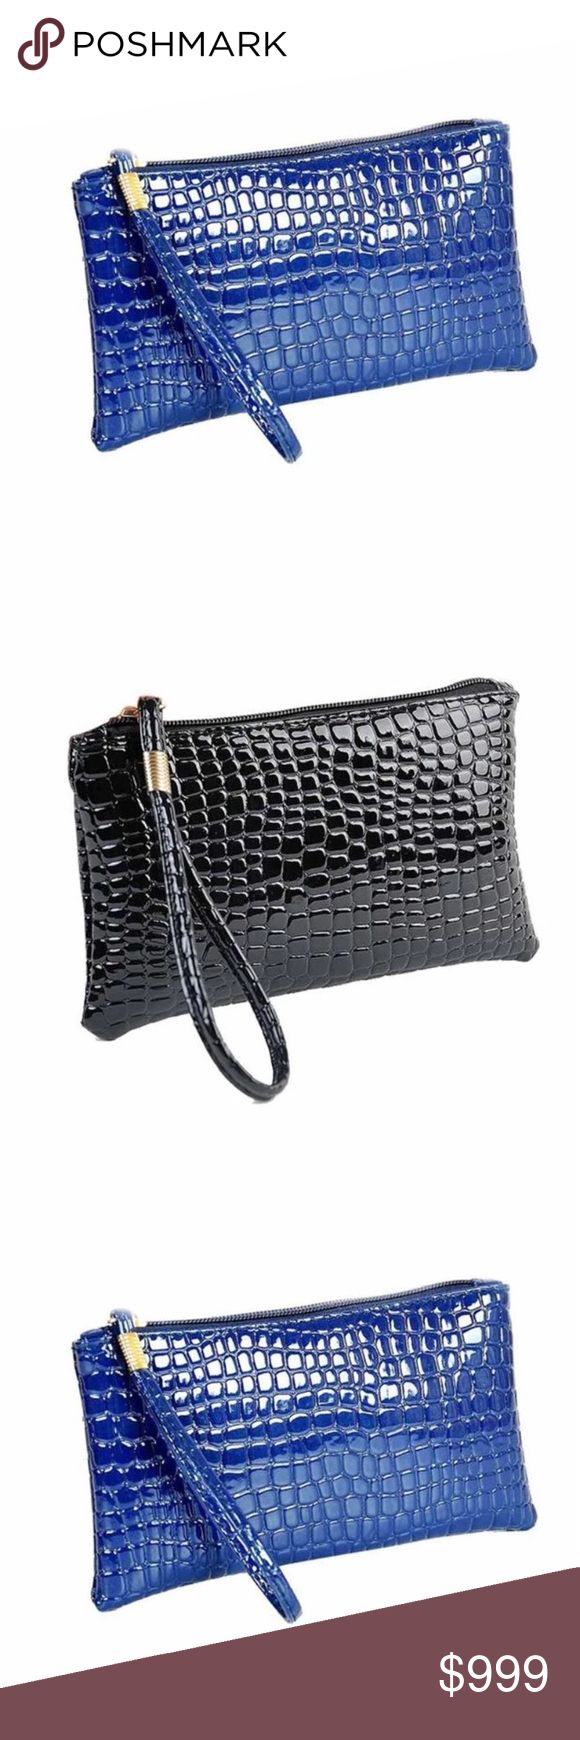 Coming Soon! Handbags New Fashion Casual Women Bags Crocodile PU Leather Clutch Handbag Bag. Available in Royal Blue and Black! Great for going out at night when you don't want to carry a handbag! Bags Mini Bags